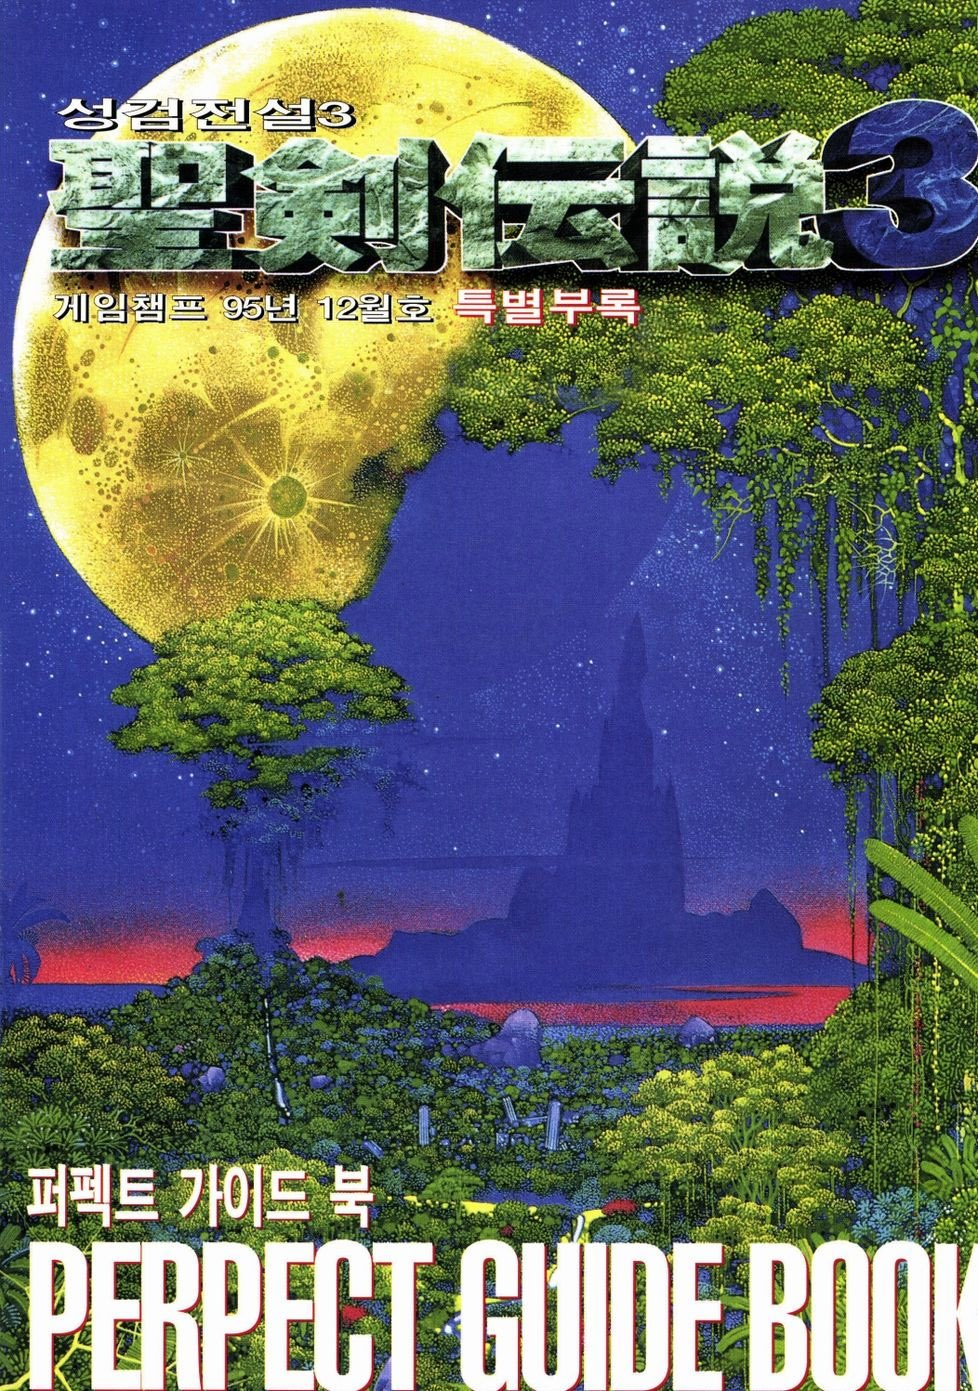 Game Champ Issue 037 supplement (December 1995)